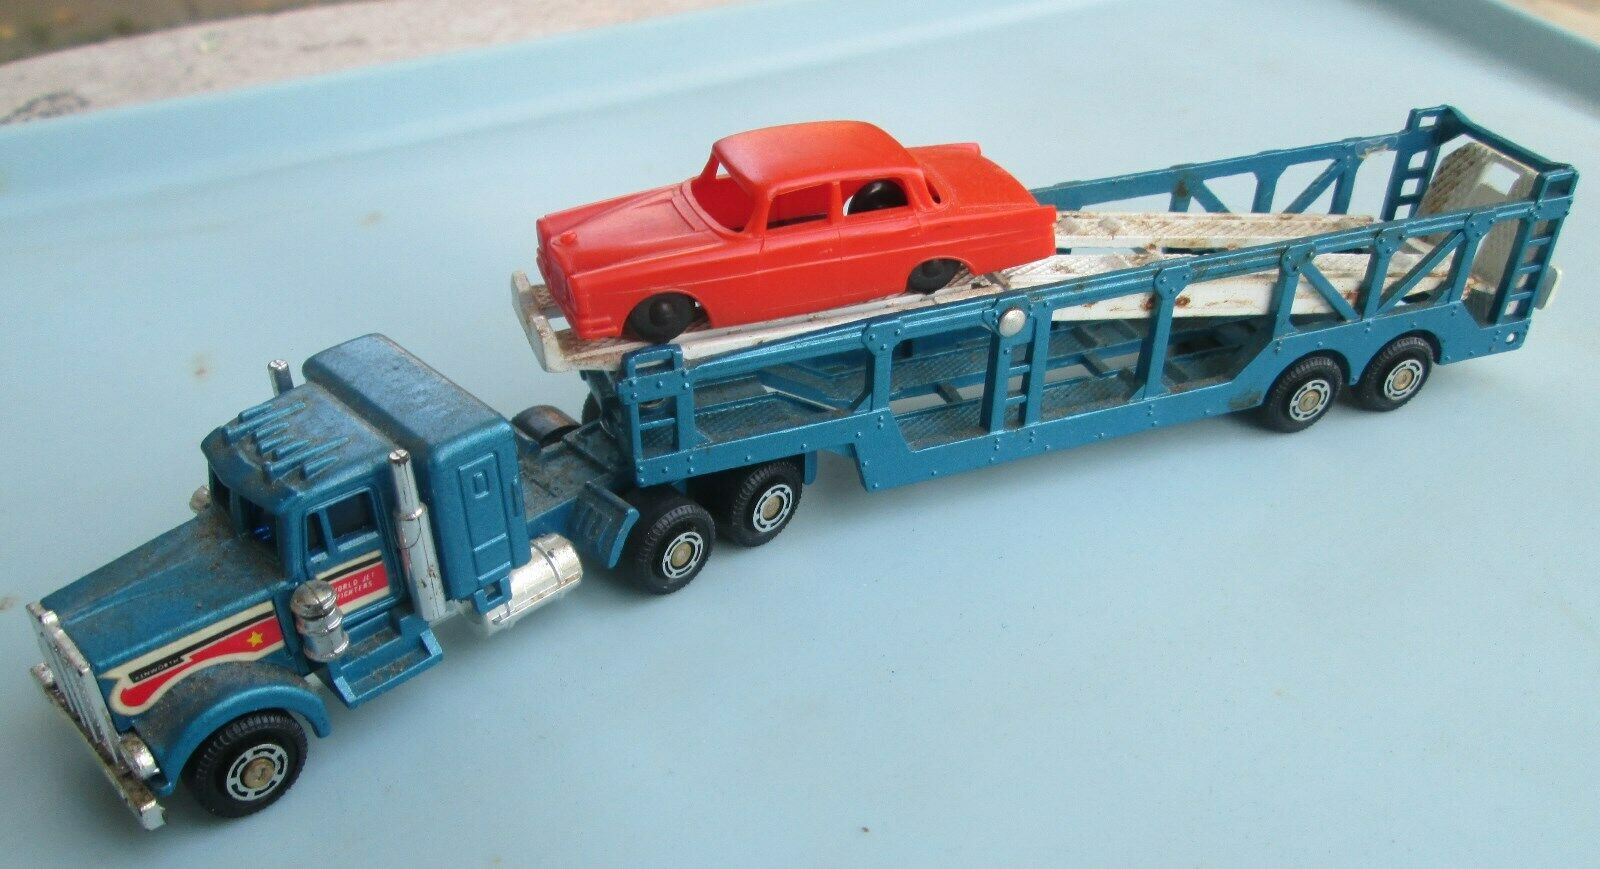 H.O. Haulers SHINSEI Kenworth Car Hauler Mini POWER Trailor